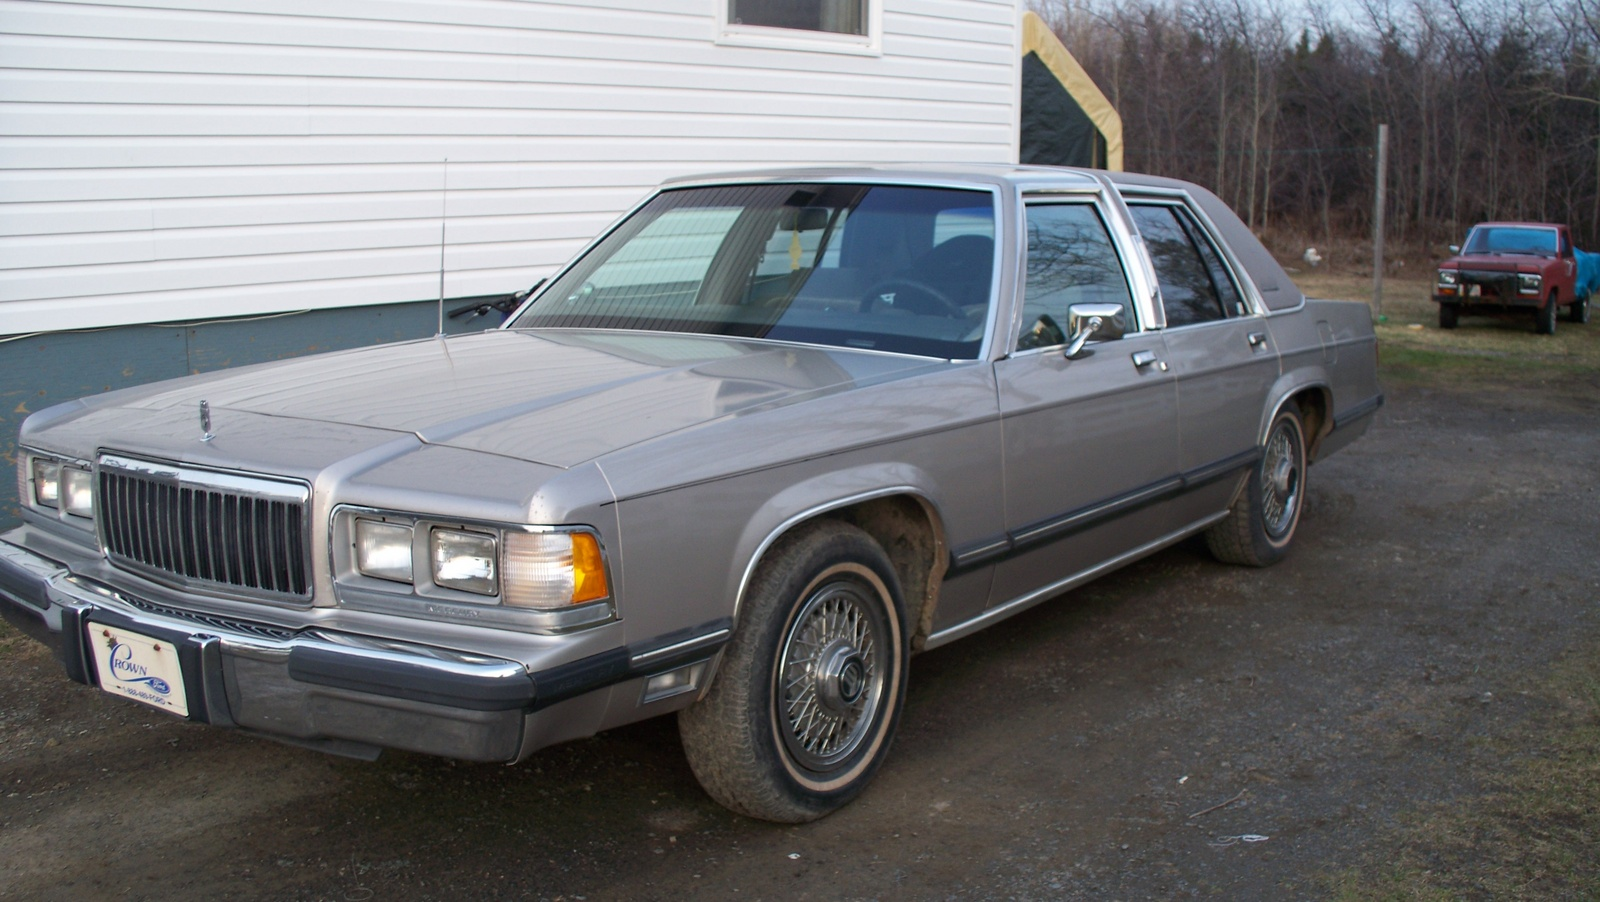 1991 Mercury Grand Marquis 4 Dr LS Sedan picture